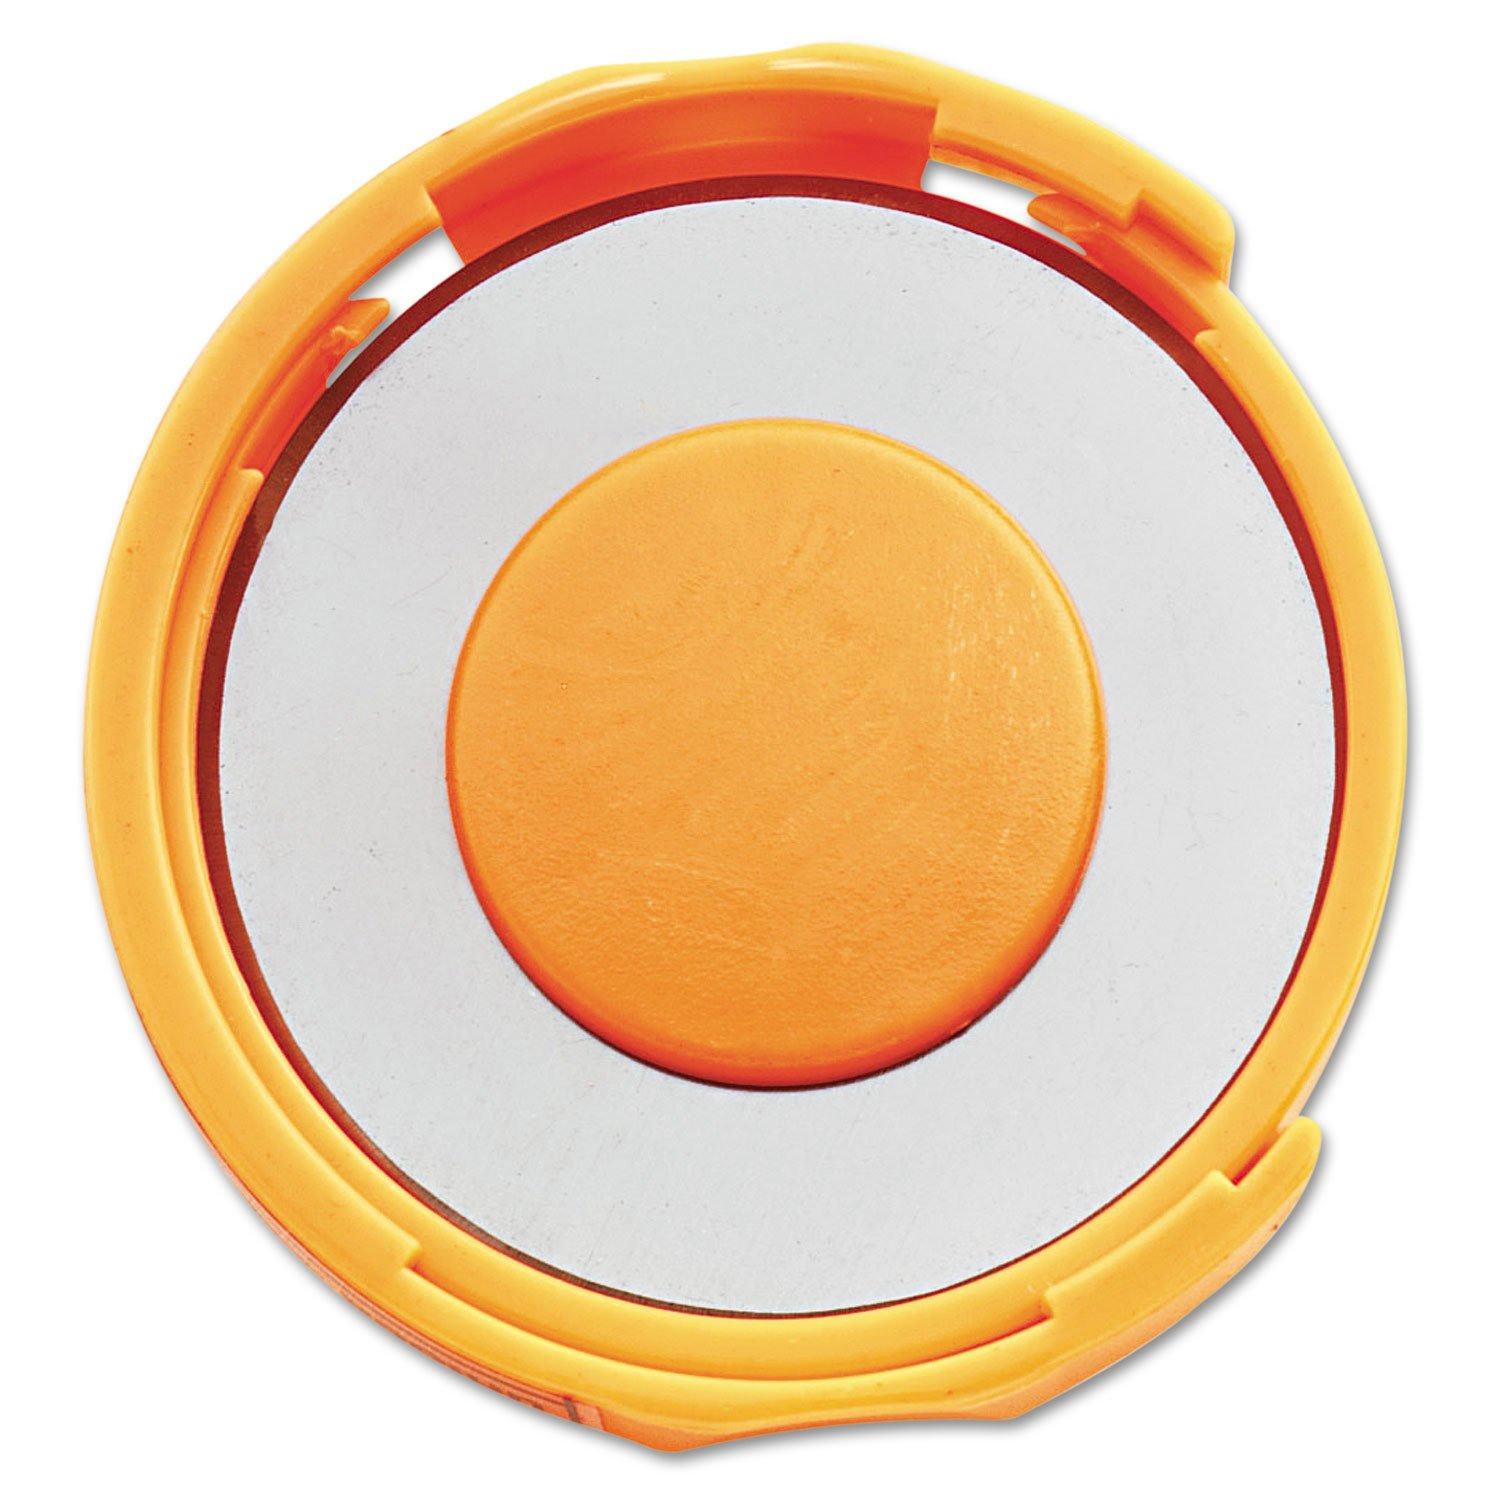 Fiskars 45mm Replacement Rotary Blade, Straight Cut, Style S, 2-Count (01-005590) Fiskars Brands Inc.